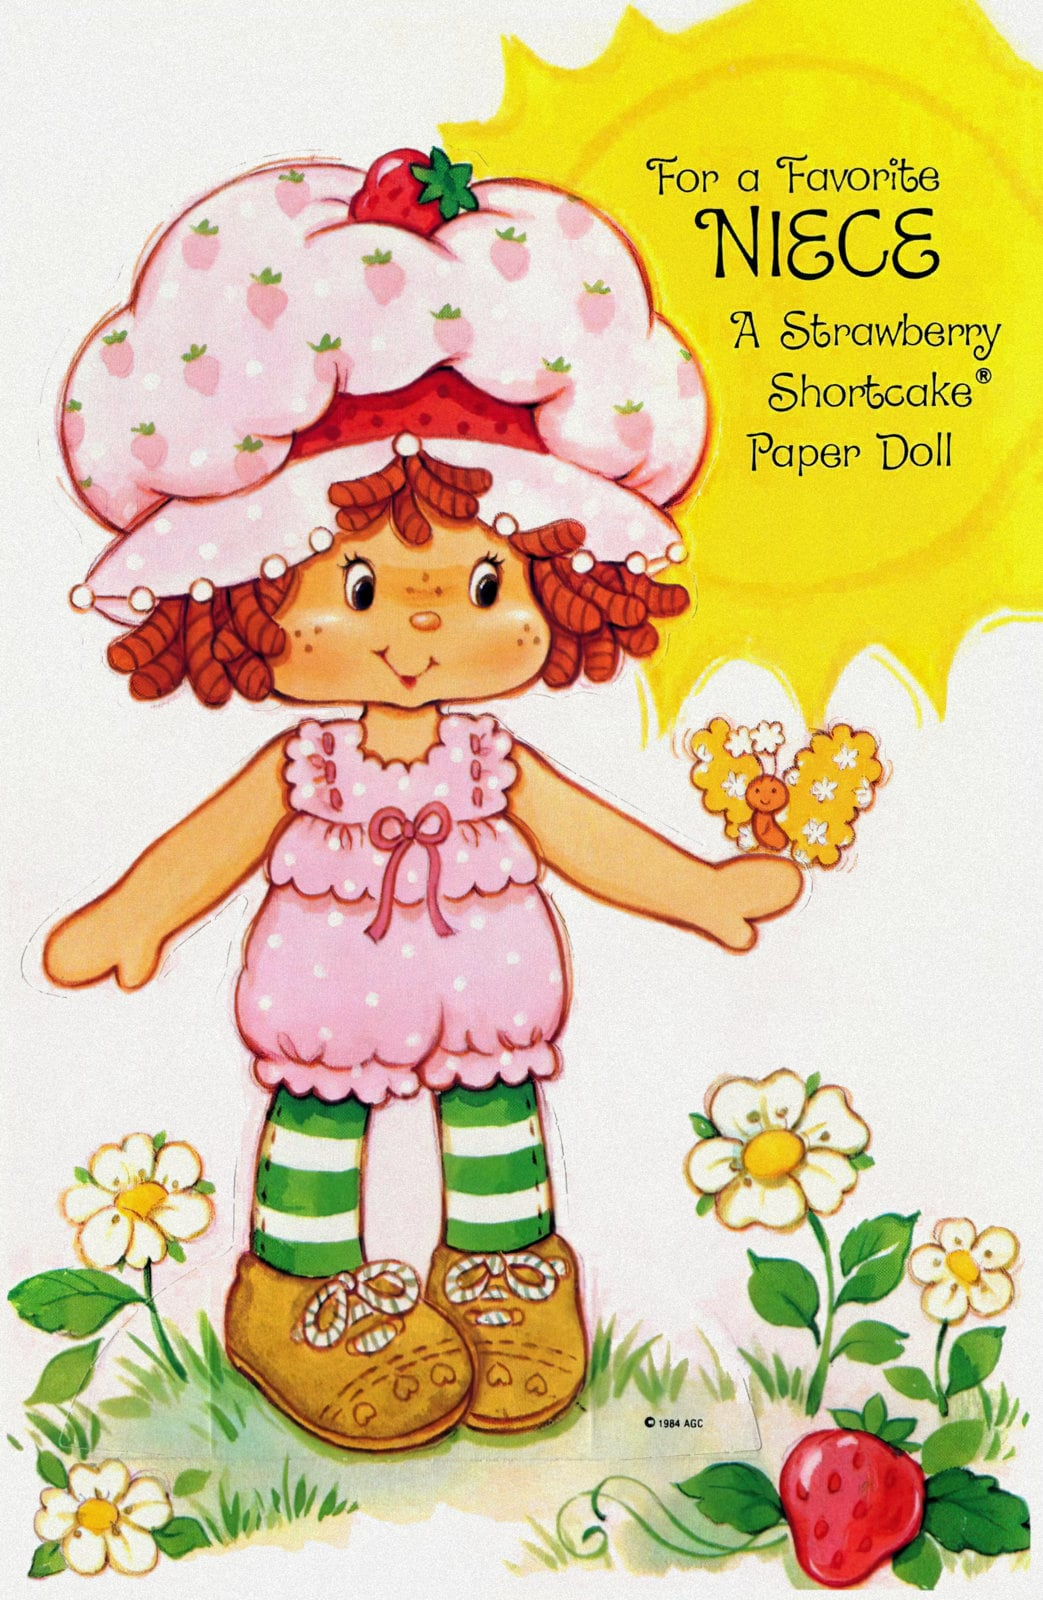 Retro 1980s Strawberry Shortcake card and paper doll for niece